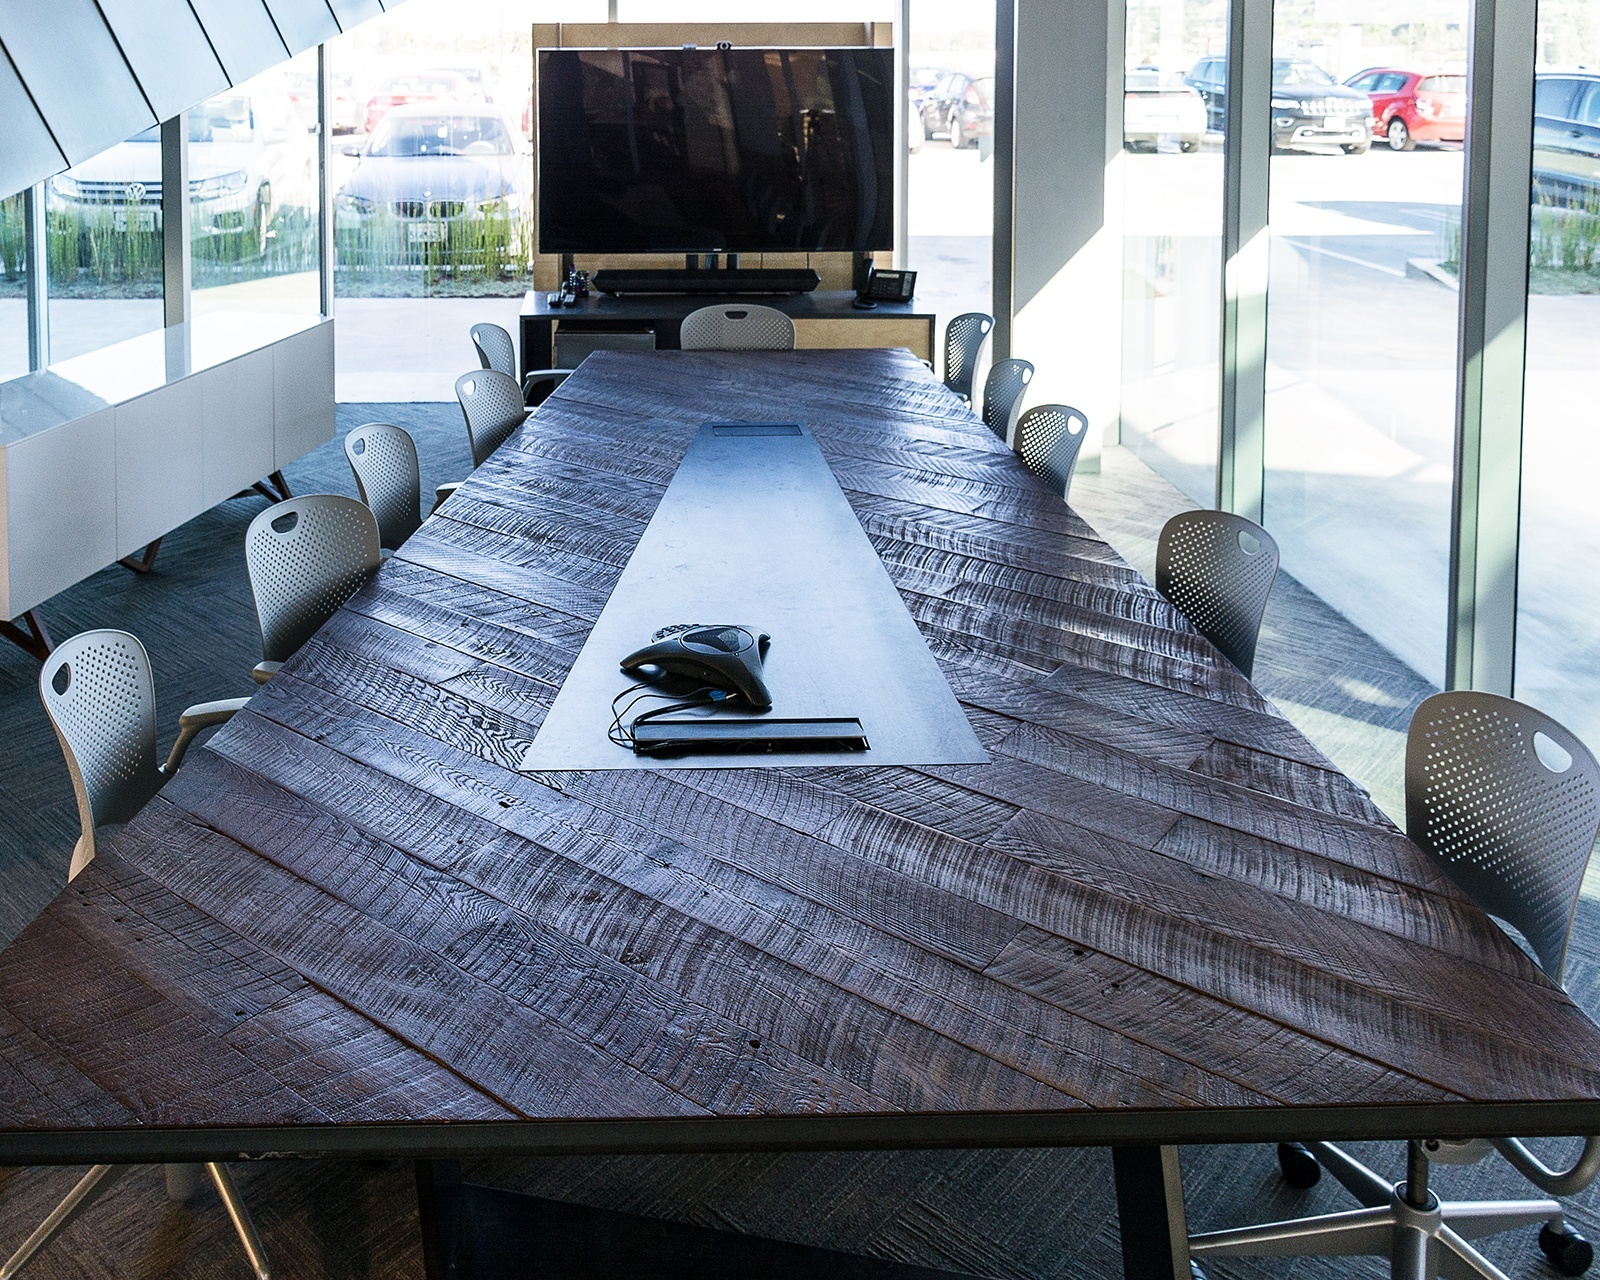 omelet-culver-city-office-8